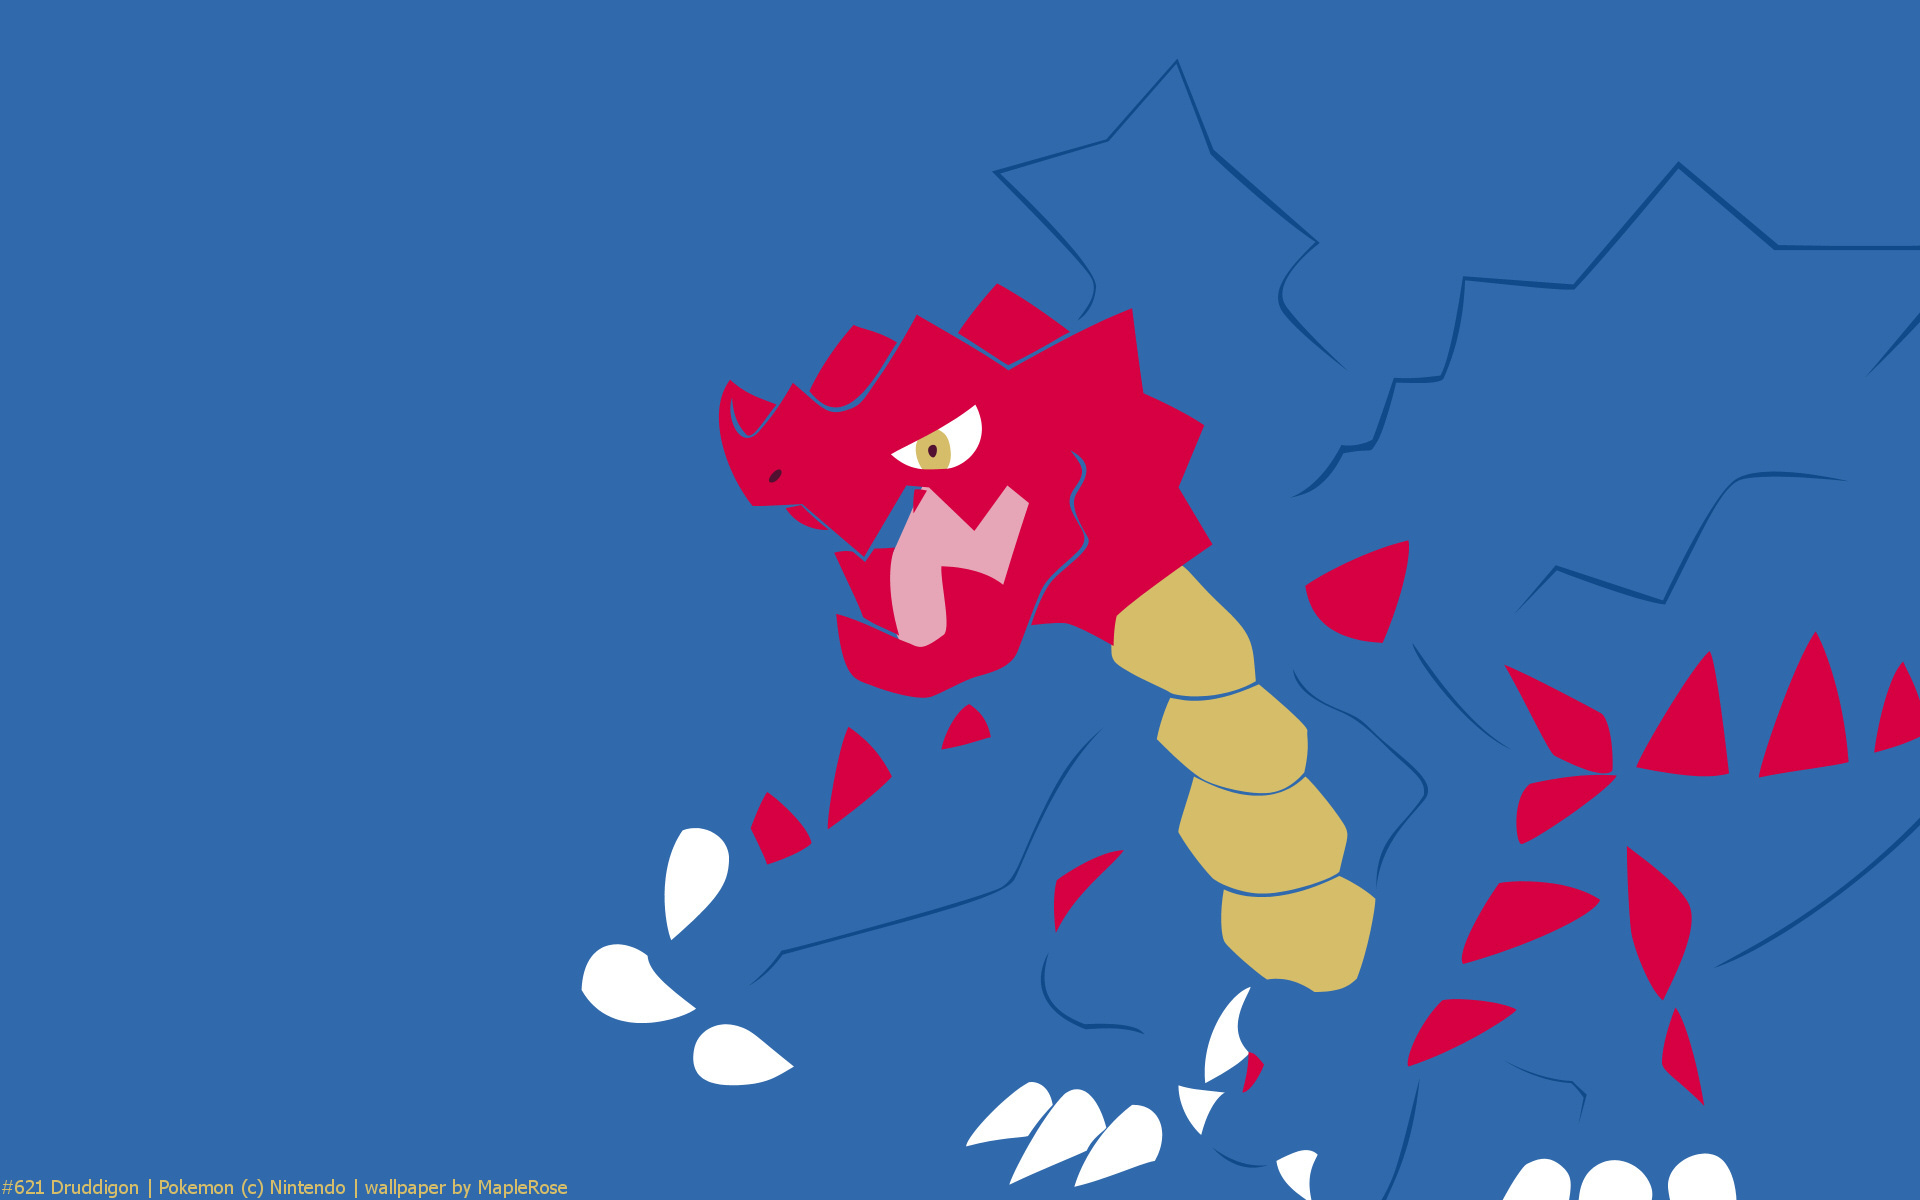 pokemon, druddigon